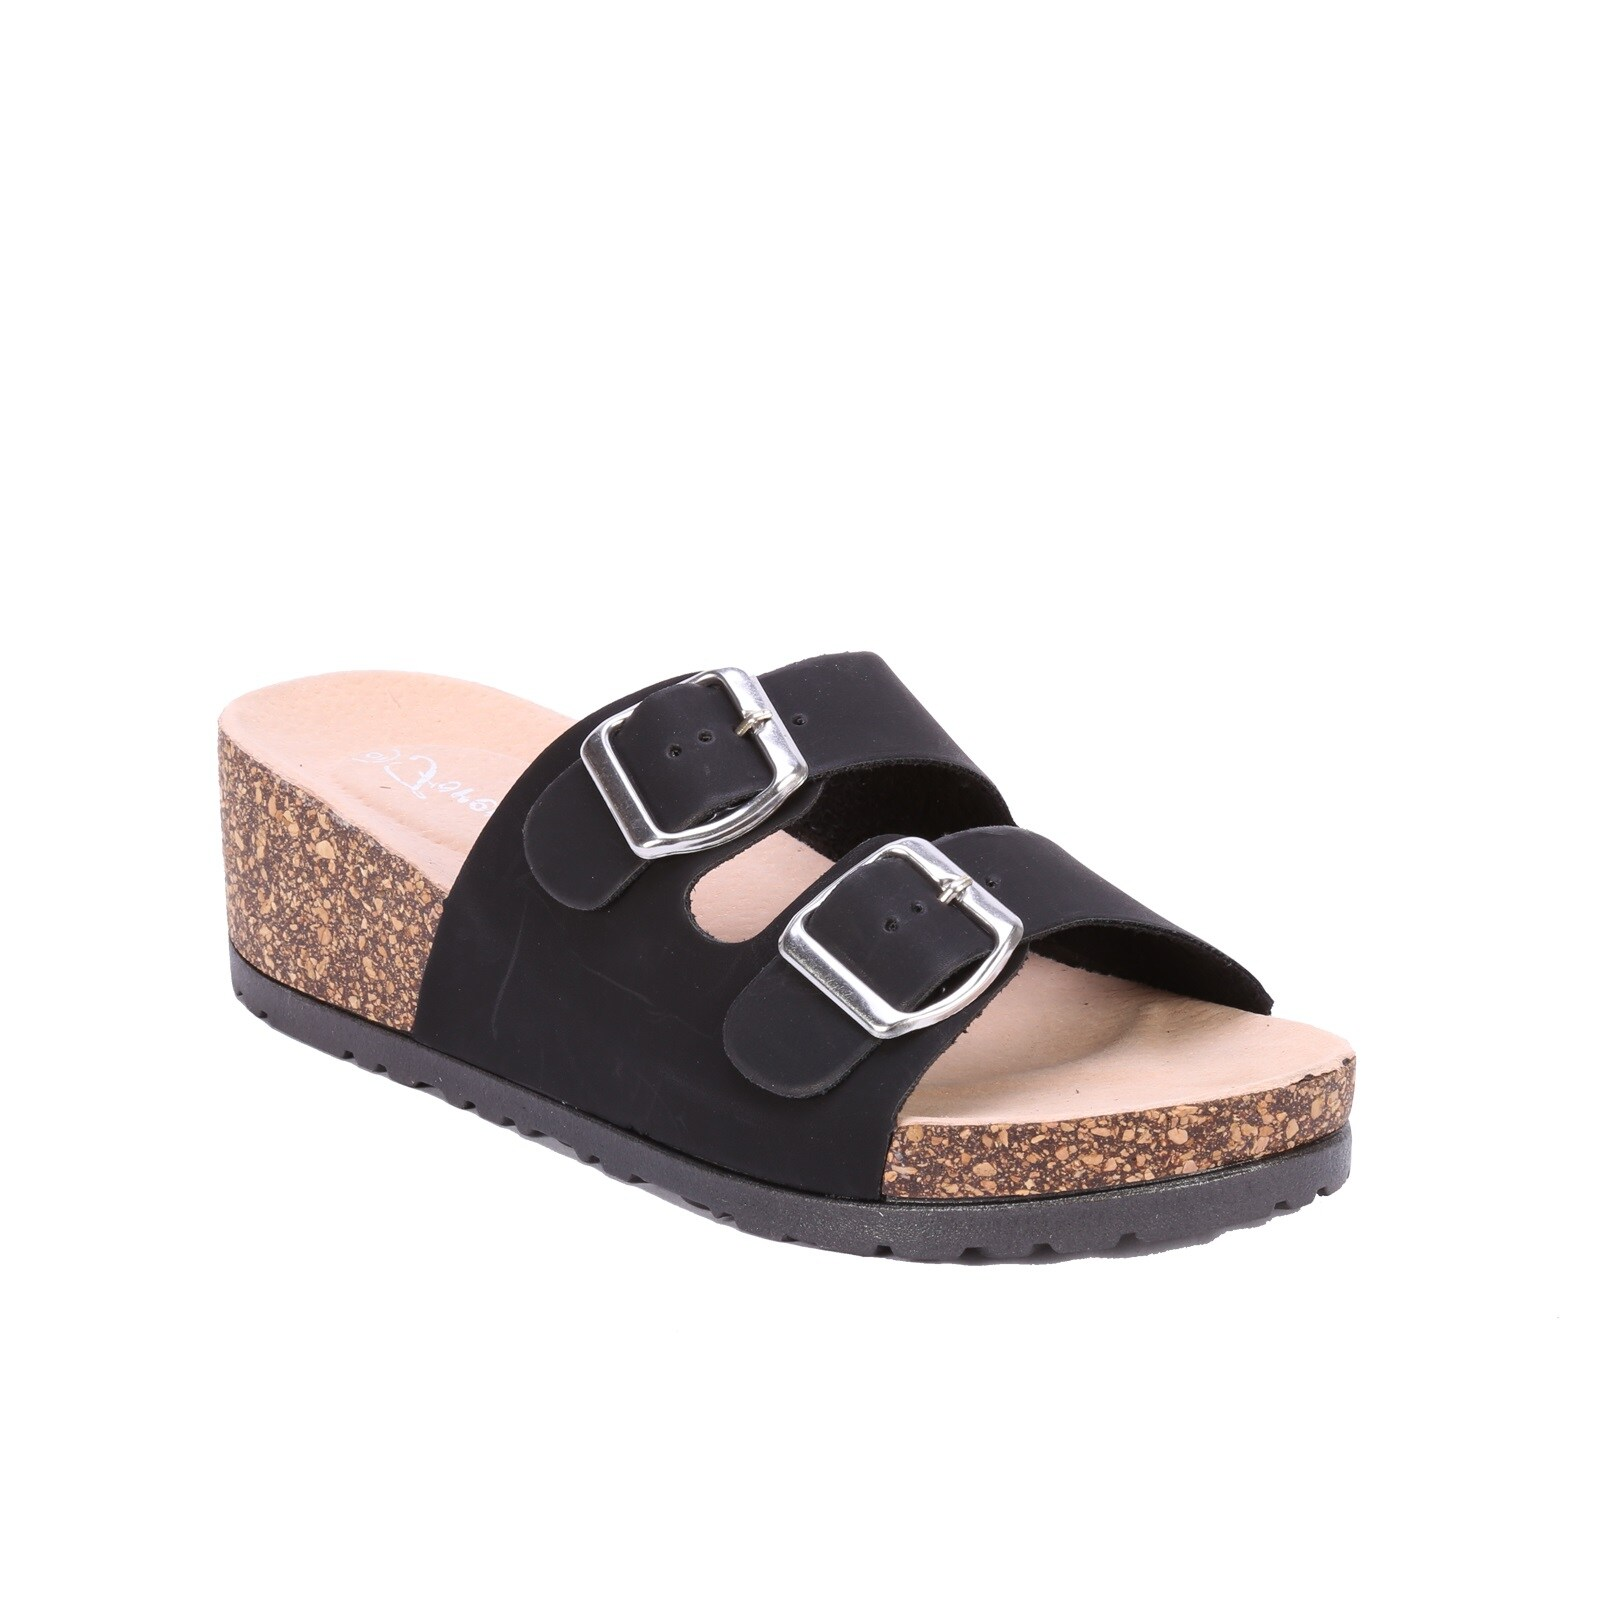 Coshare Forever Women's Melrose-88 Leather PU Buckle Embellished Birkenstock-style Low Top Wedge Sandals